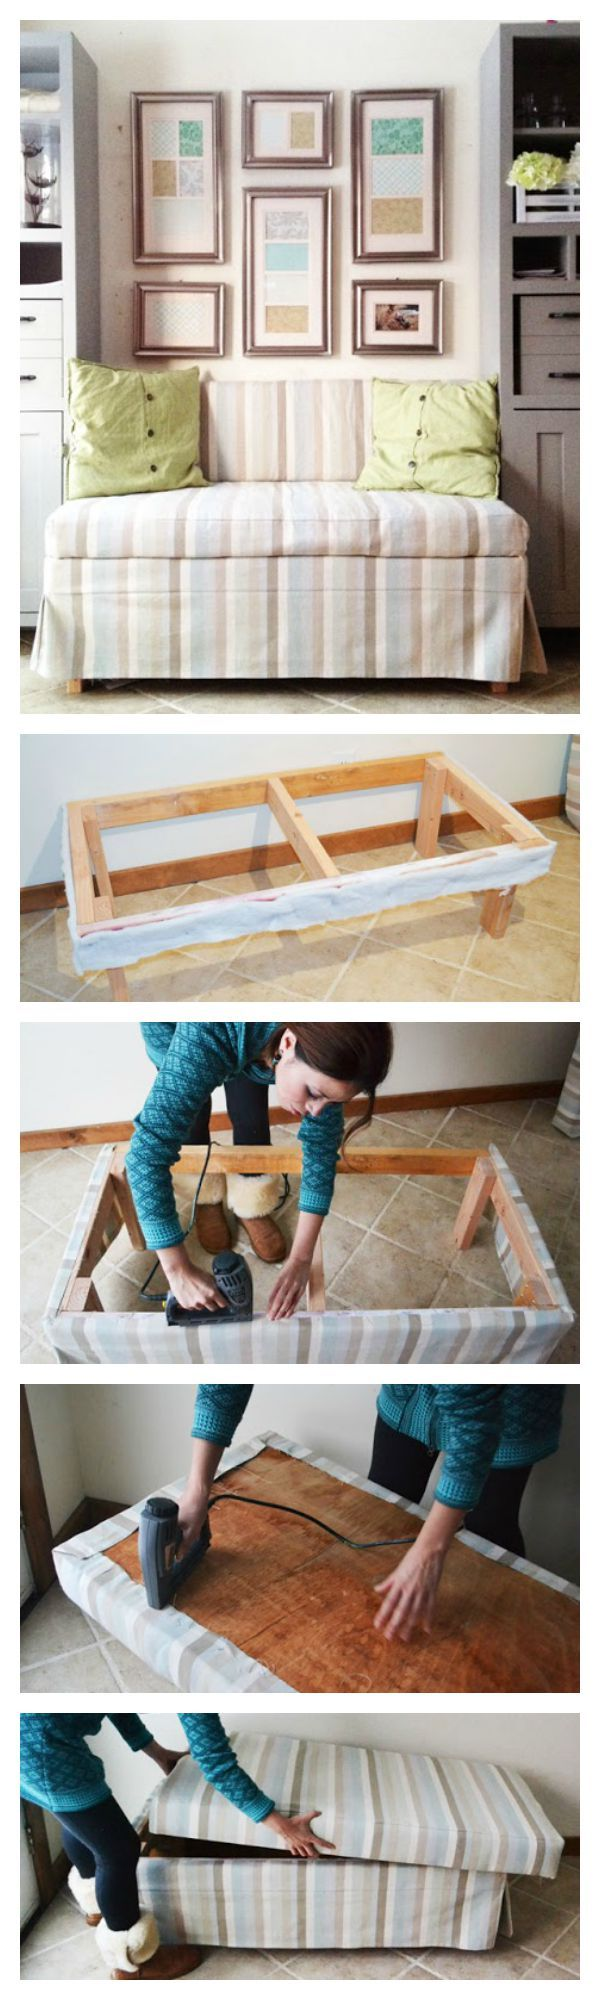 Ana White | 2x4 Upholstered Banquette Seat - DIY Projects